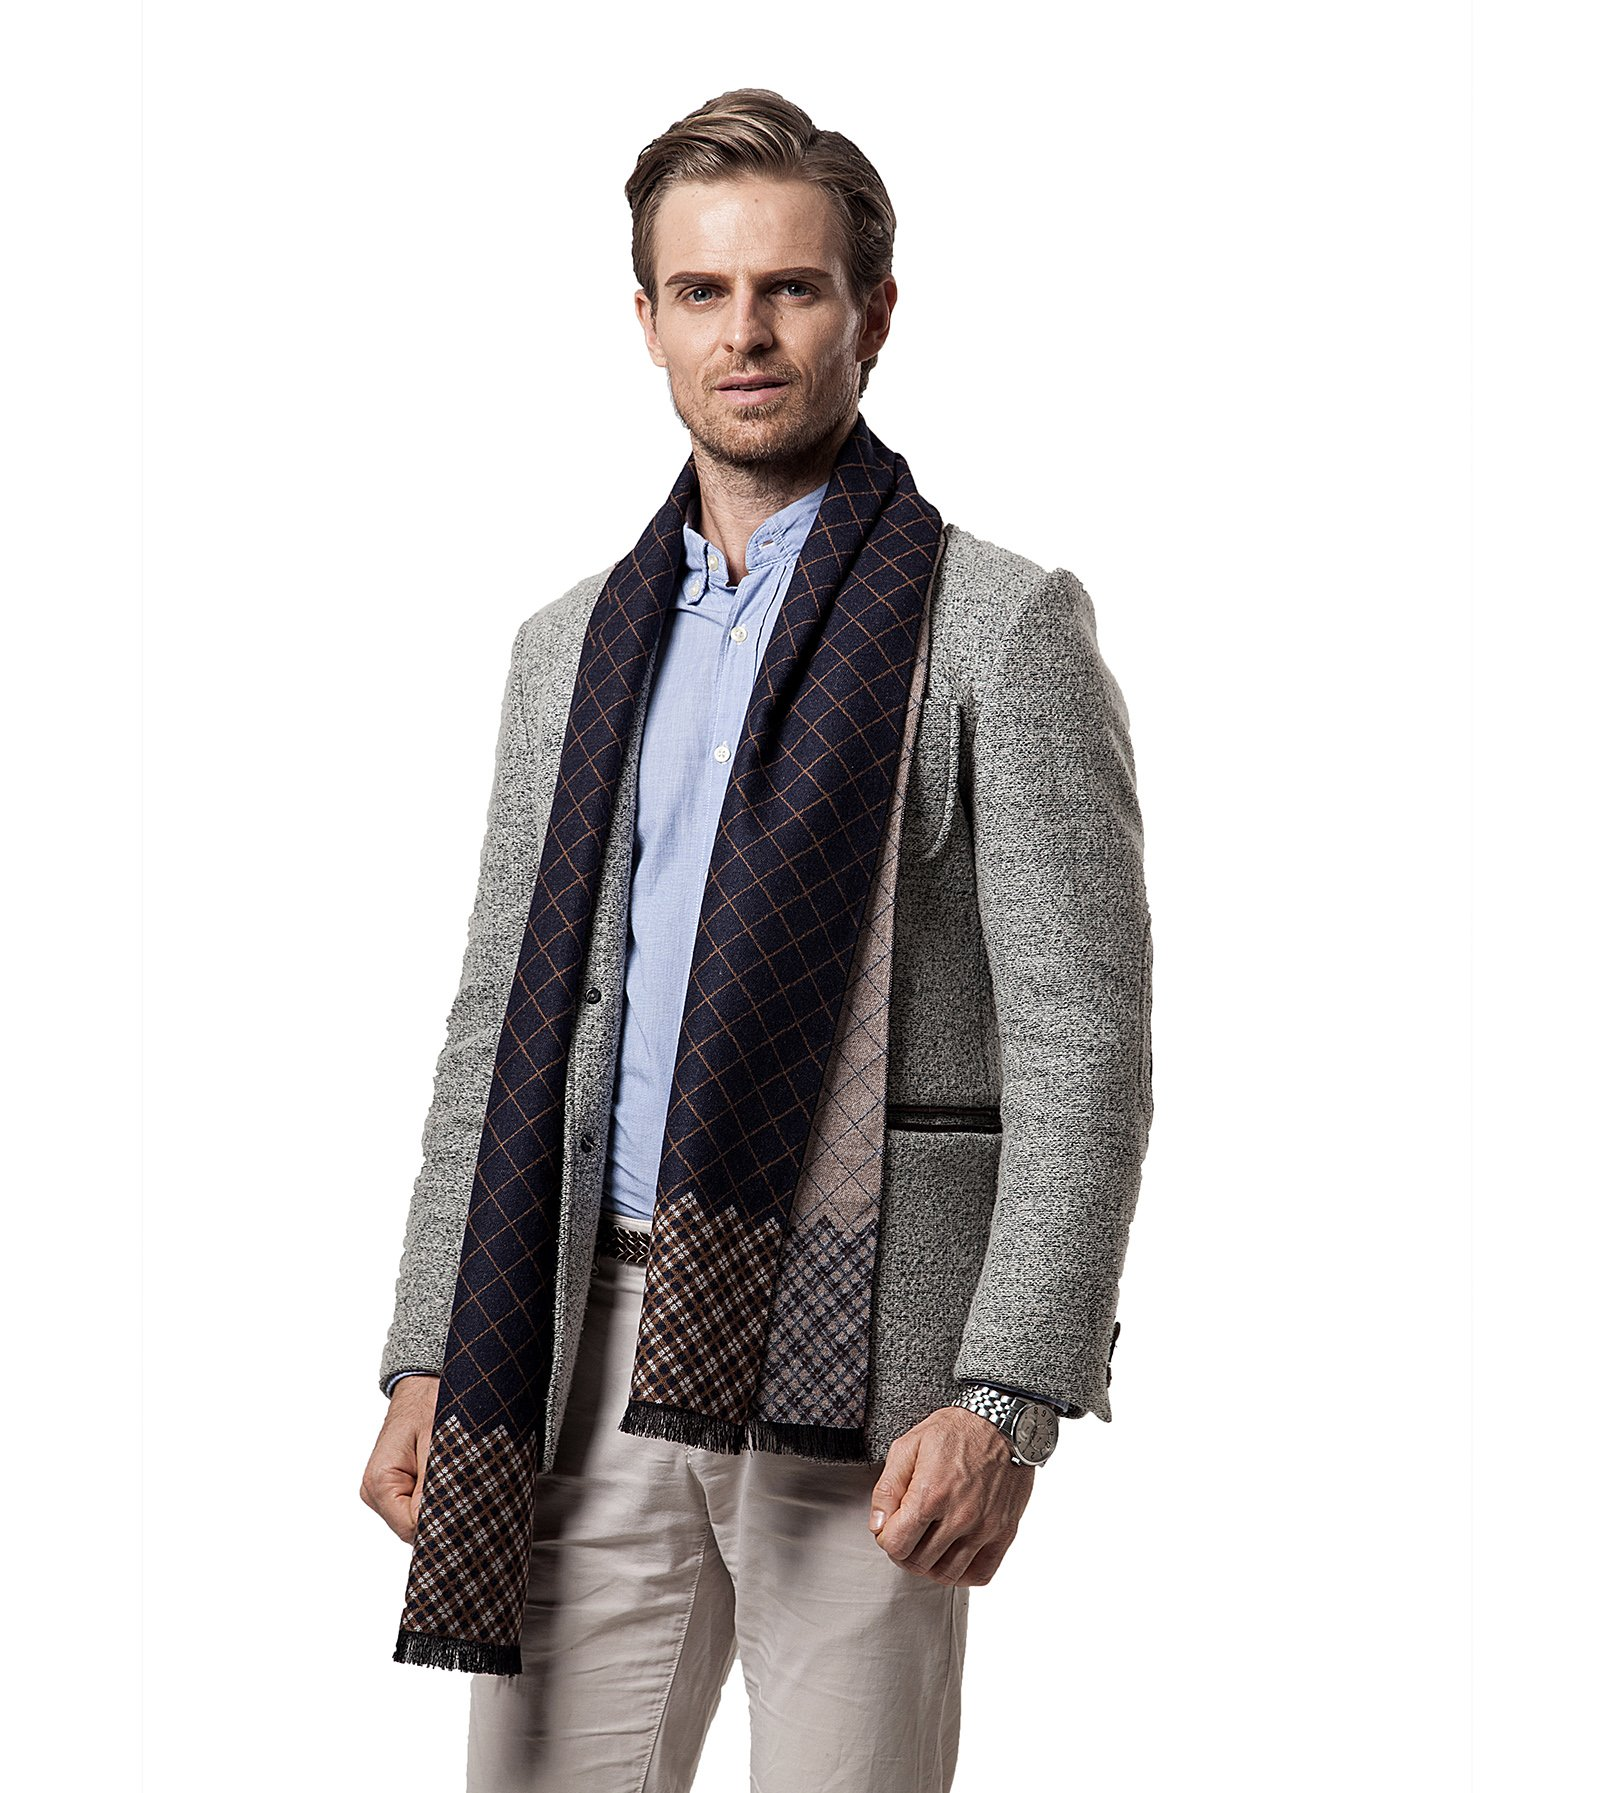 Cashmere Man Scarf Winter Men Scarf Fashion Designer Shawl Bussiness Casual Scarves (Style 2)